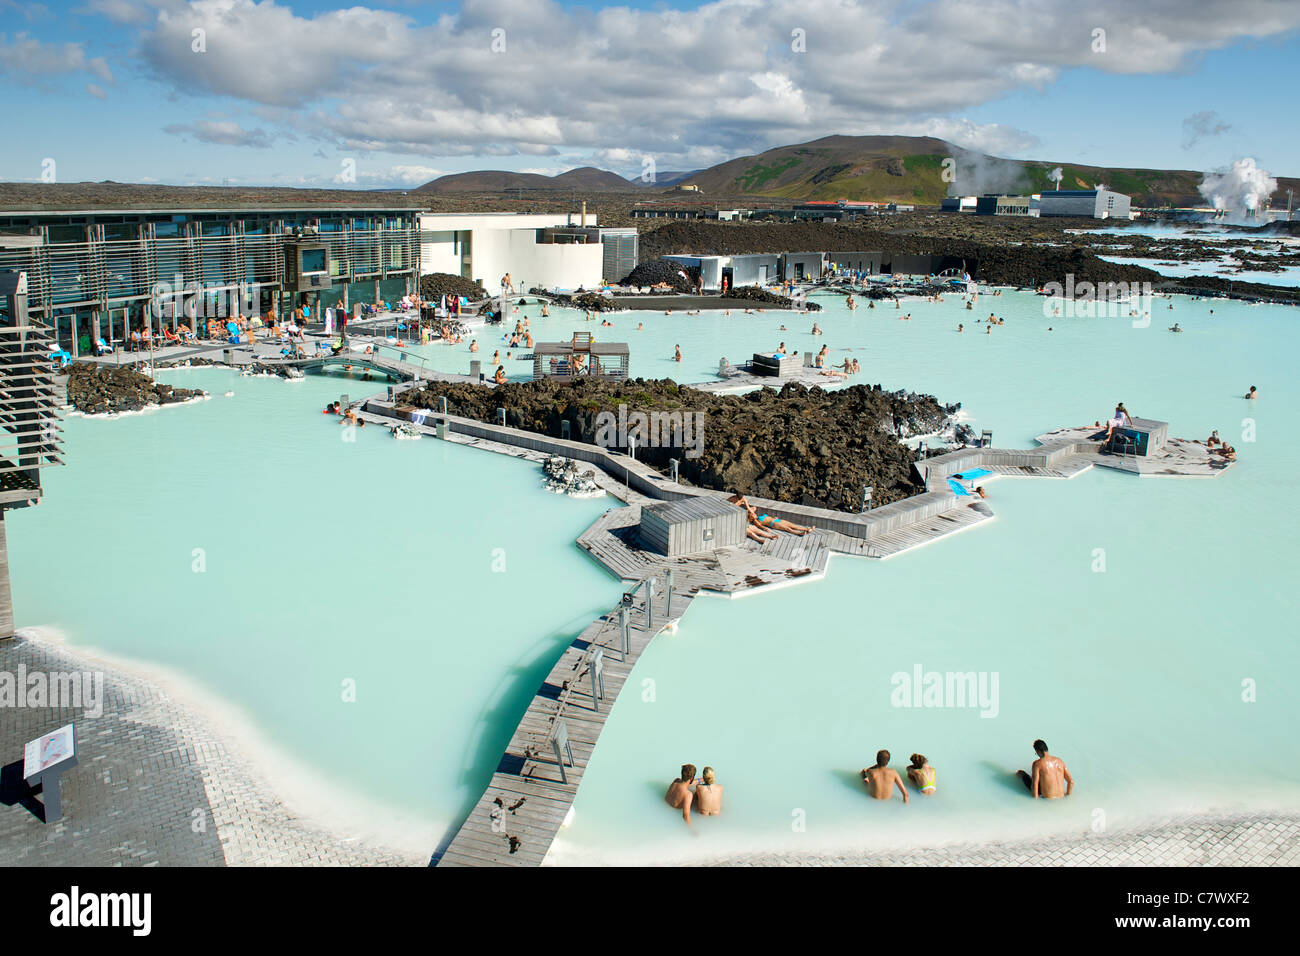 The Blue Lagoon near Reykjavik in Iceland. - Stock Image